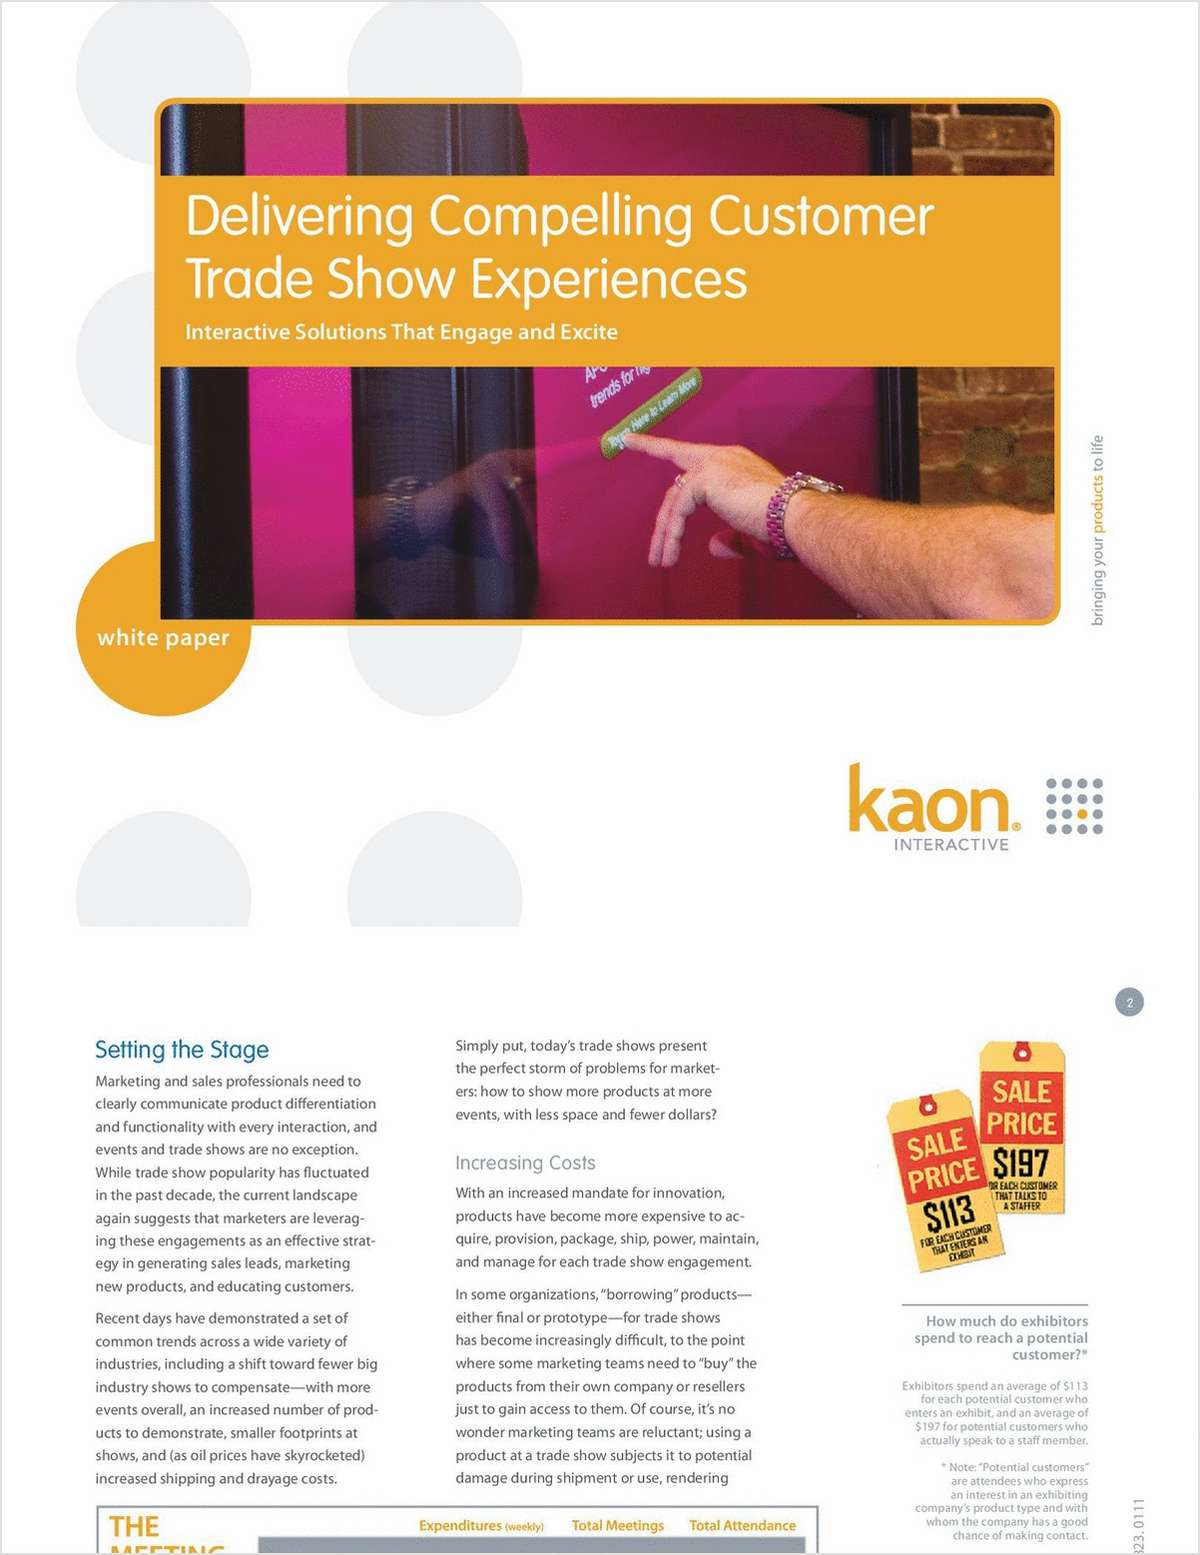 Displaying your Physical Products and Delivering a Compelling Customer Trade Show Experience